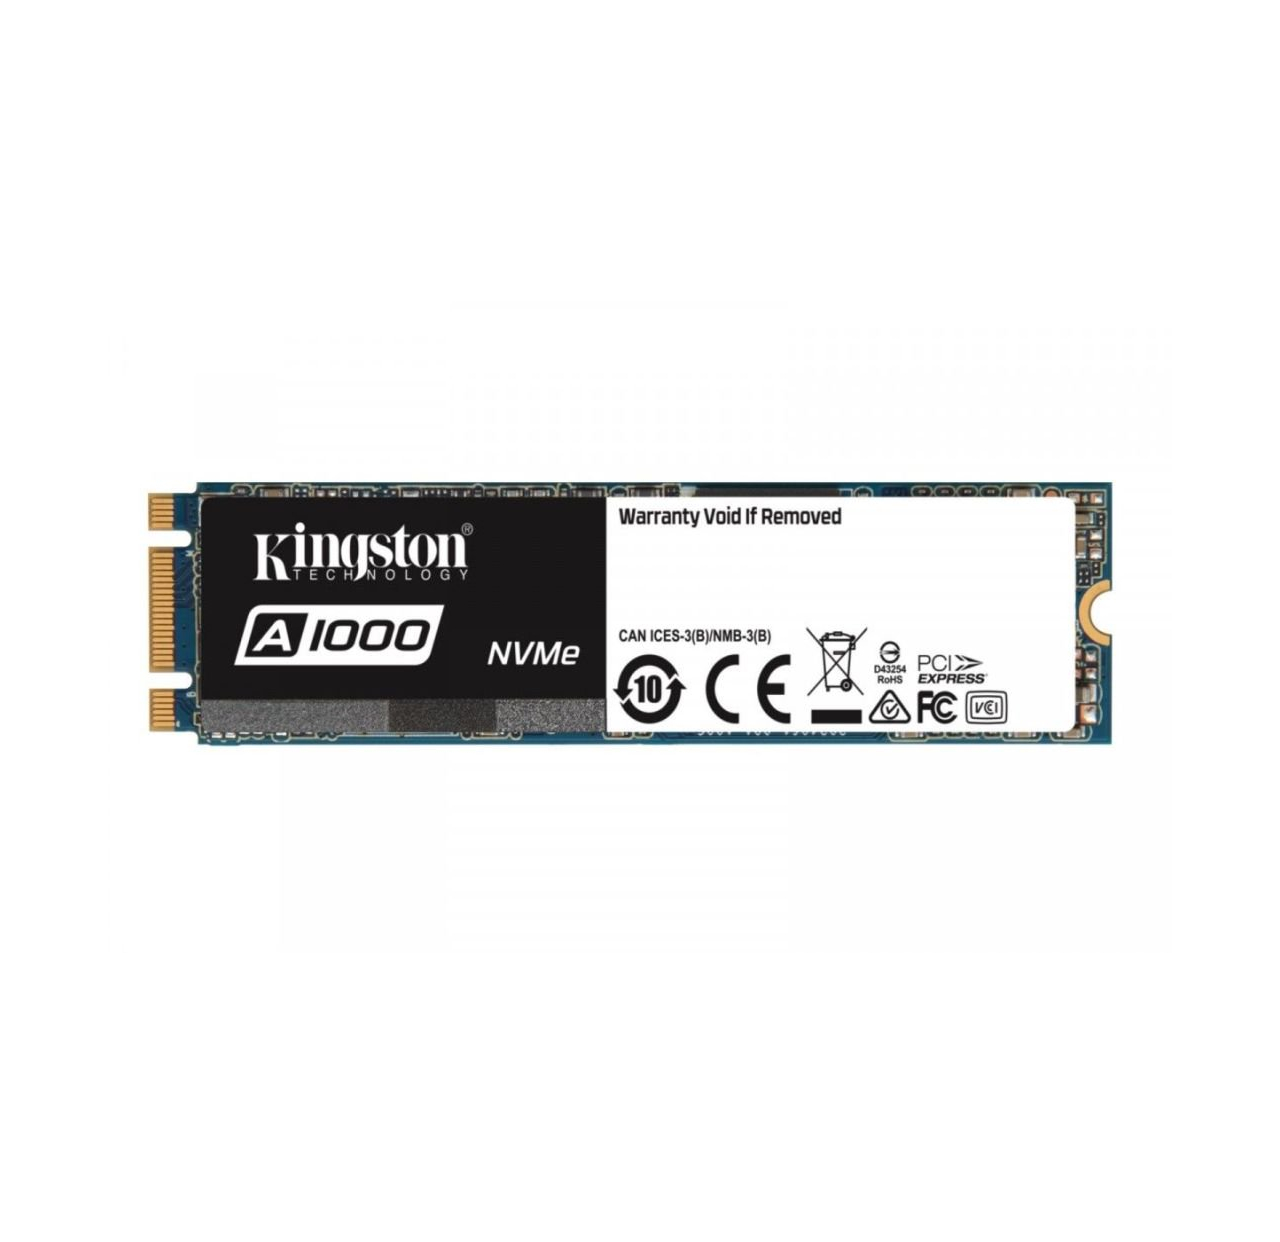 Kingston SSD A1000 M.2 2280 NVMe, 480GB, up to 1500/900MB/s*